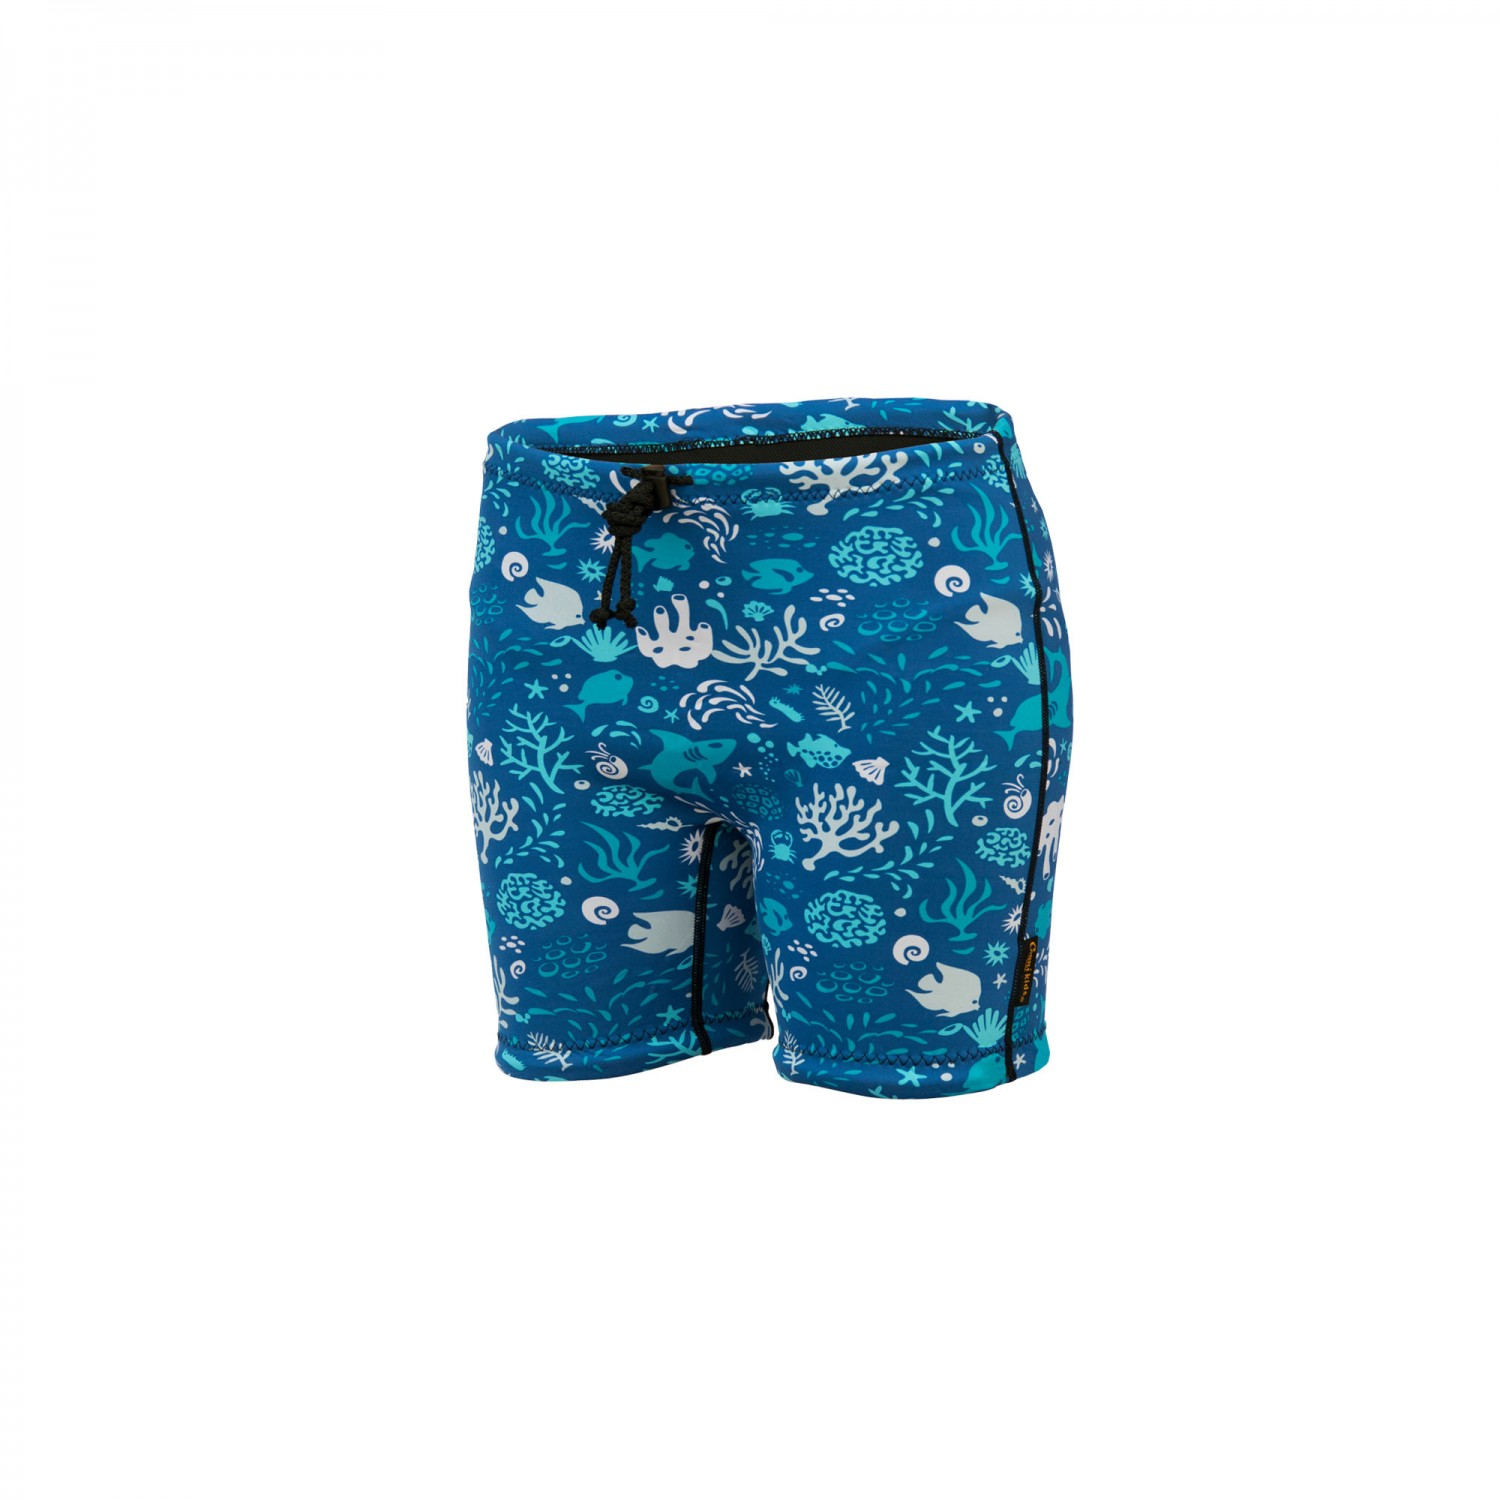 Infant Reusable Swim Nappy – OCEAN BLUE **